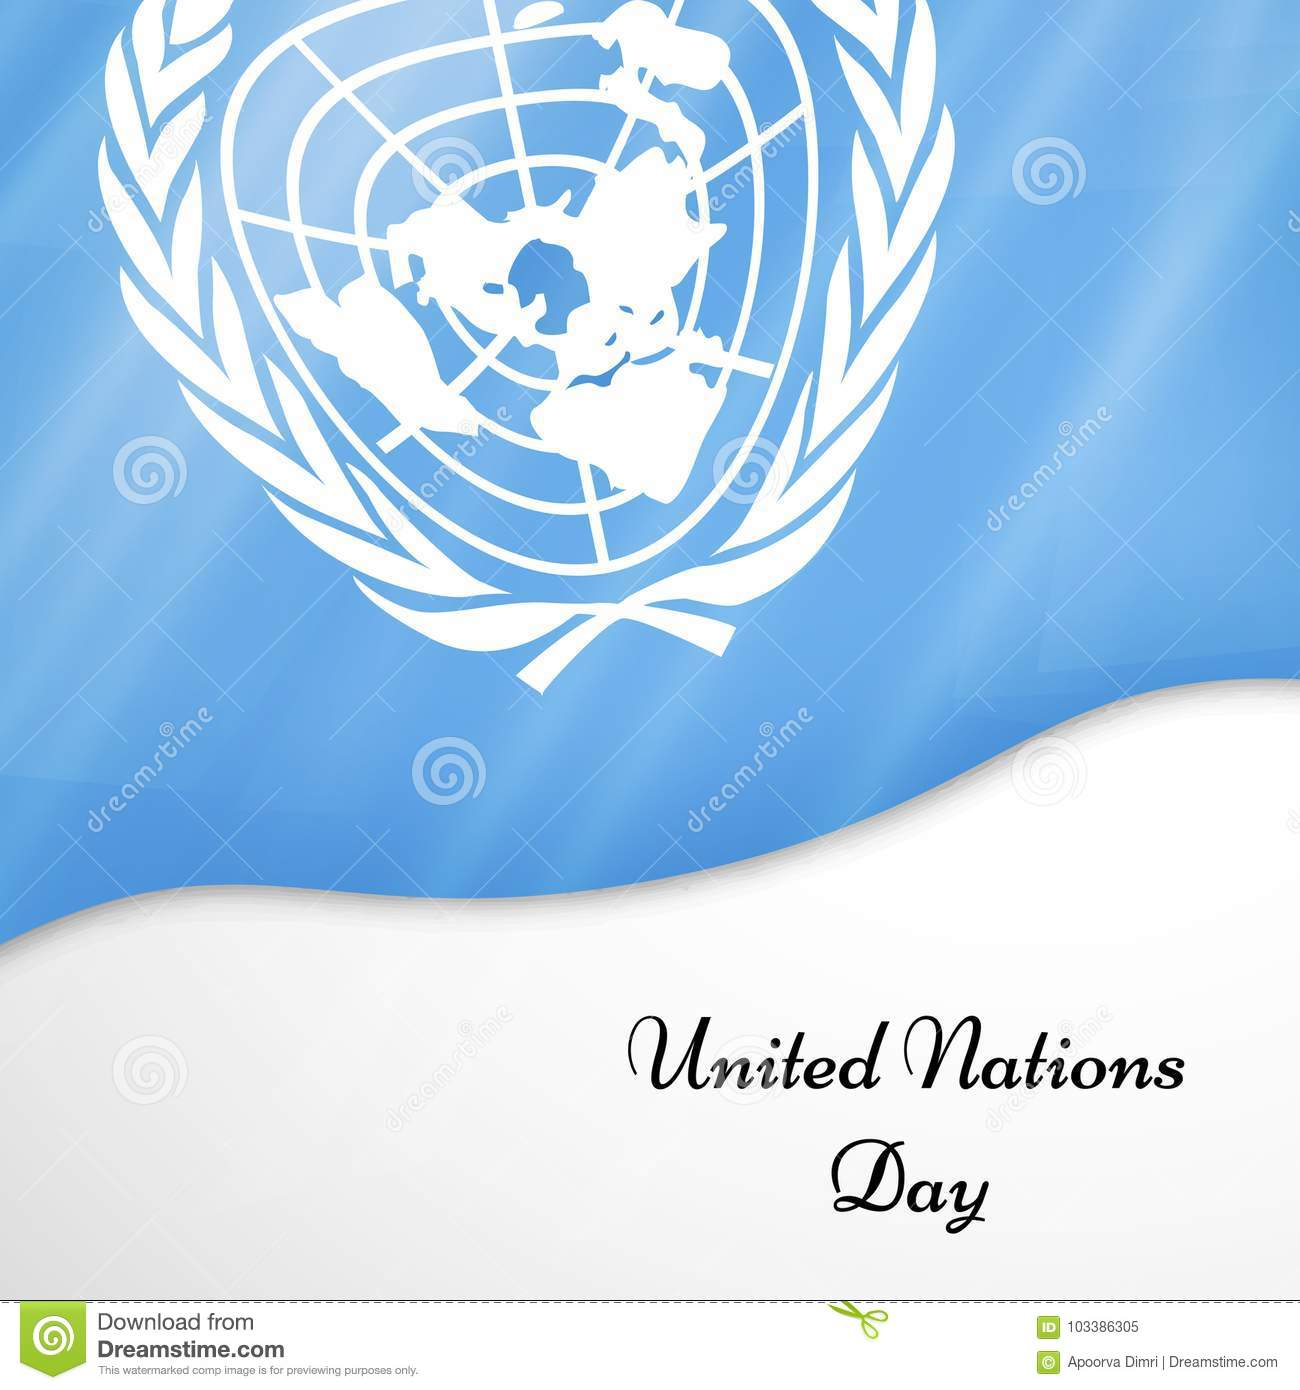 Illustration de fond de jour de Nations Unies